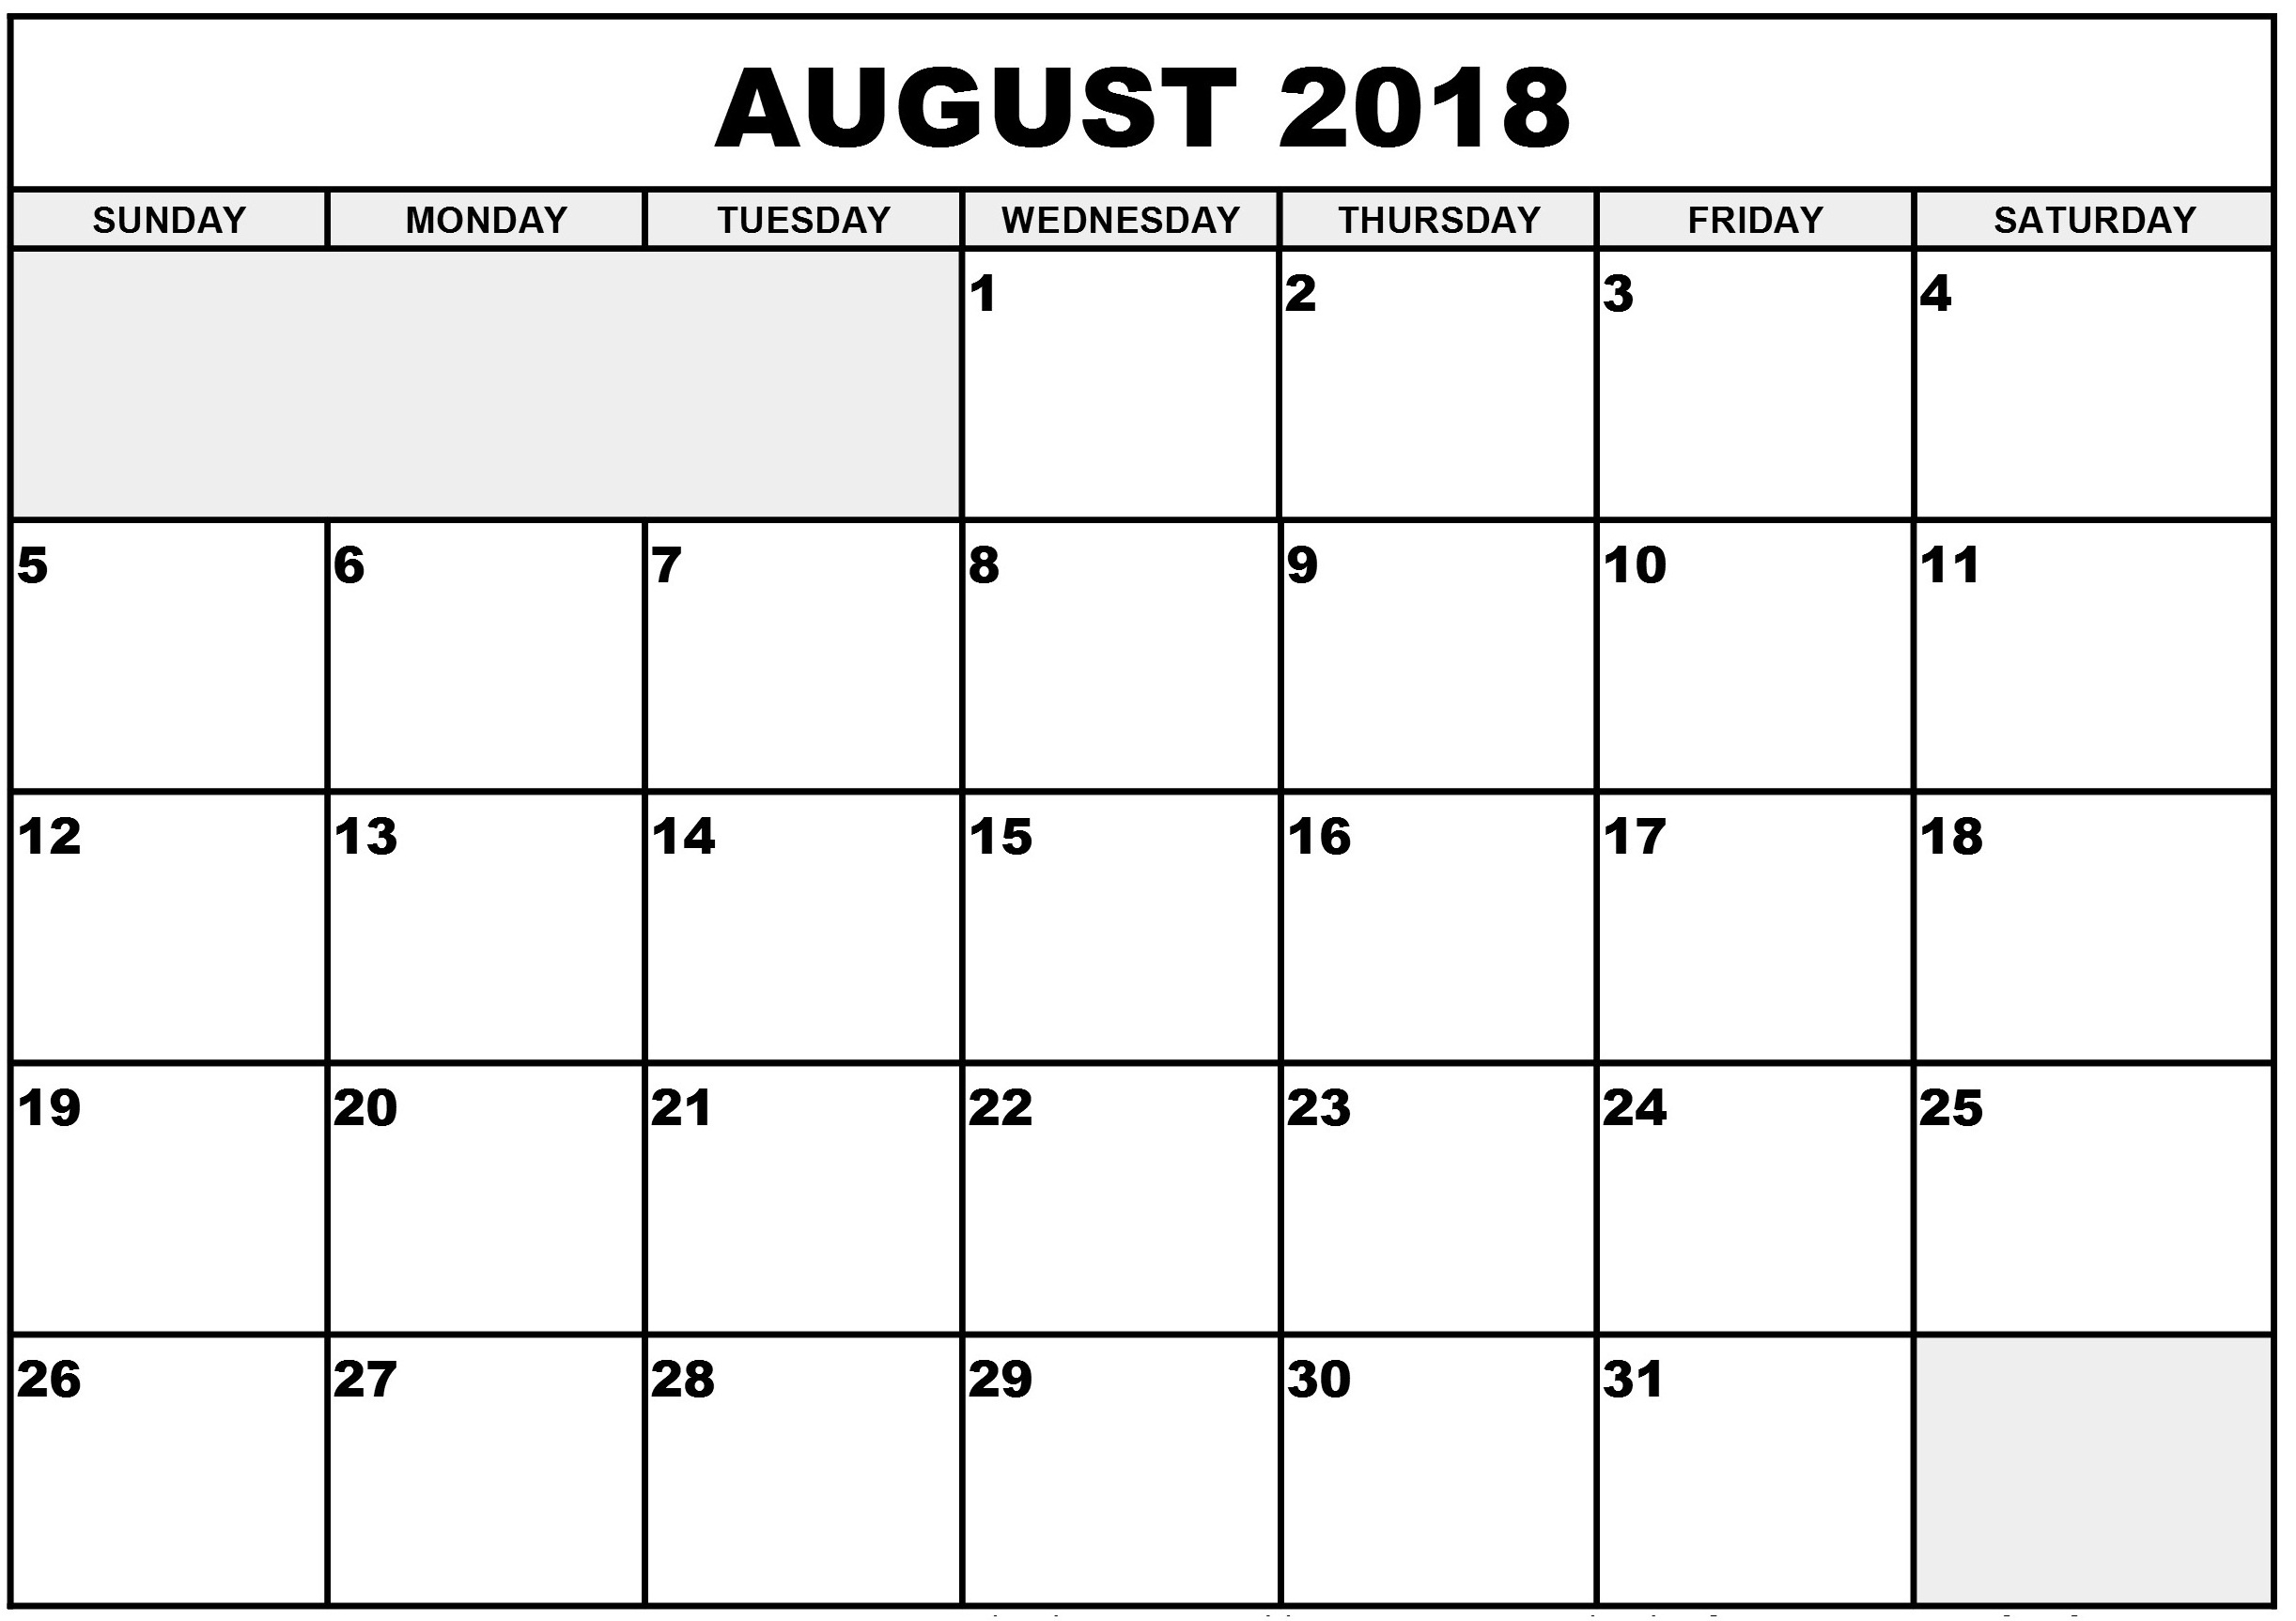 daily calendar 2018 printable template word excel pdf store Calendar August 2018 Uk List erdferdf